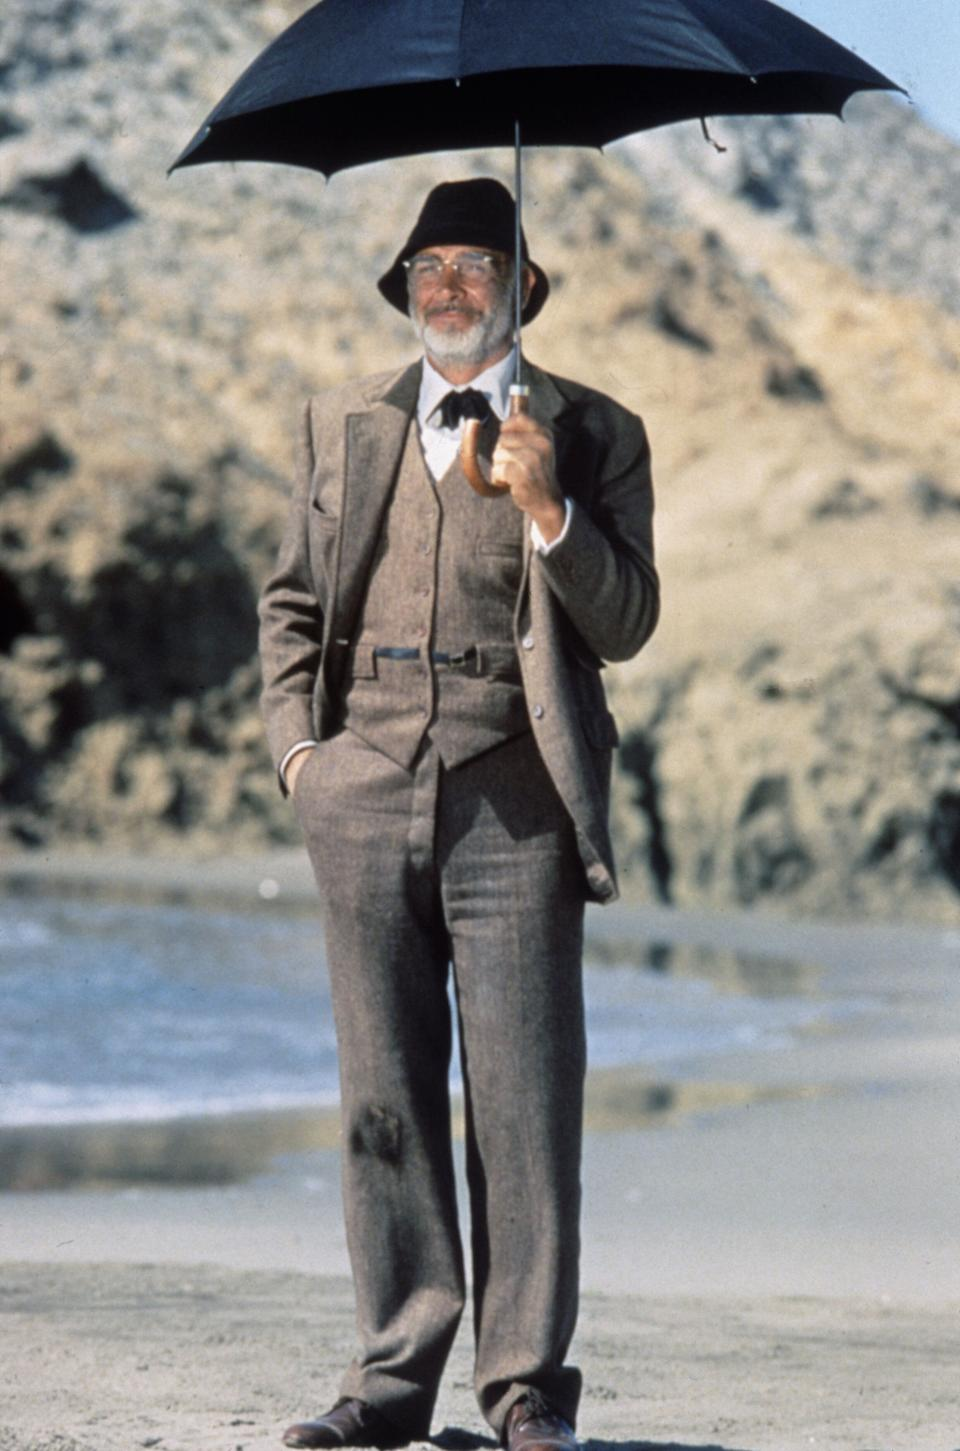 Scottish actor Sean Connery as Professor Henry Jones in a scene from the film 'Indiana Jones and the Last Crusade', 1989.  (Photo by Murray Close/Getty Images)